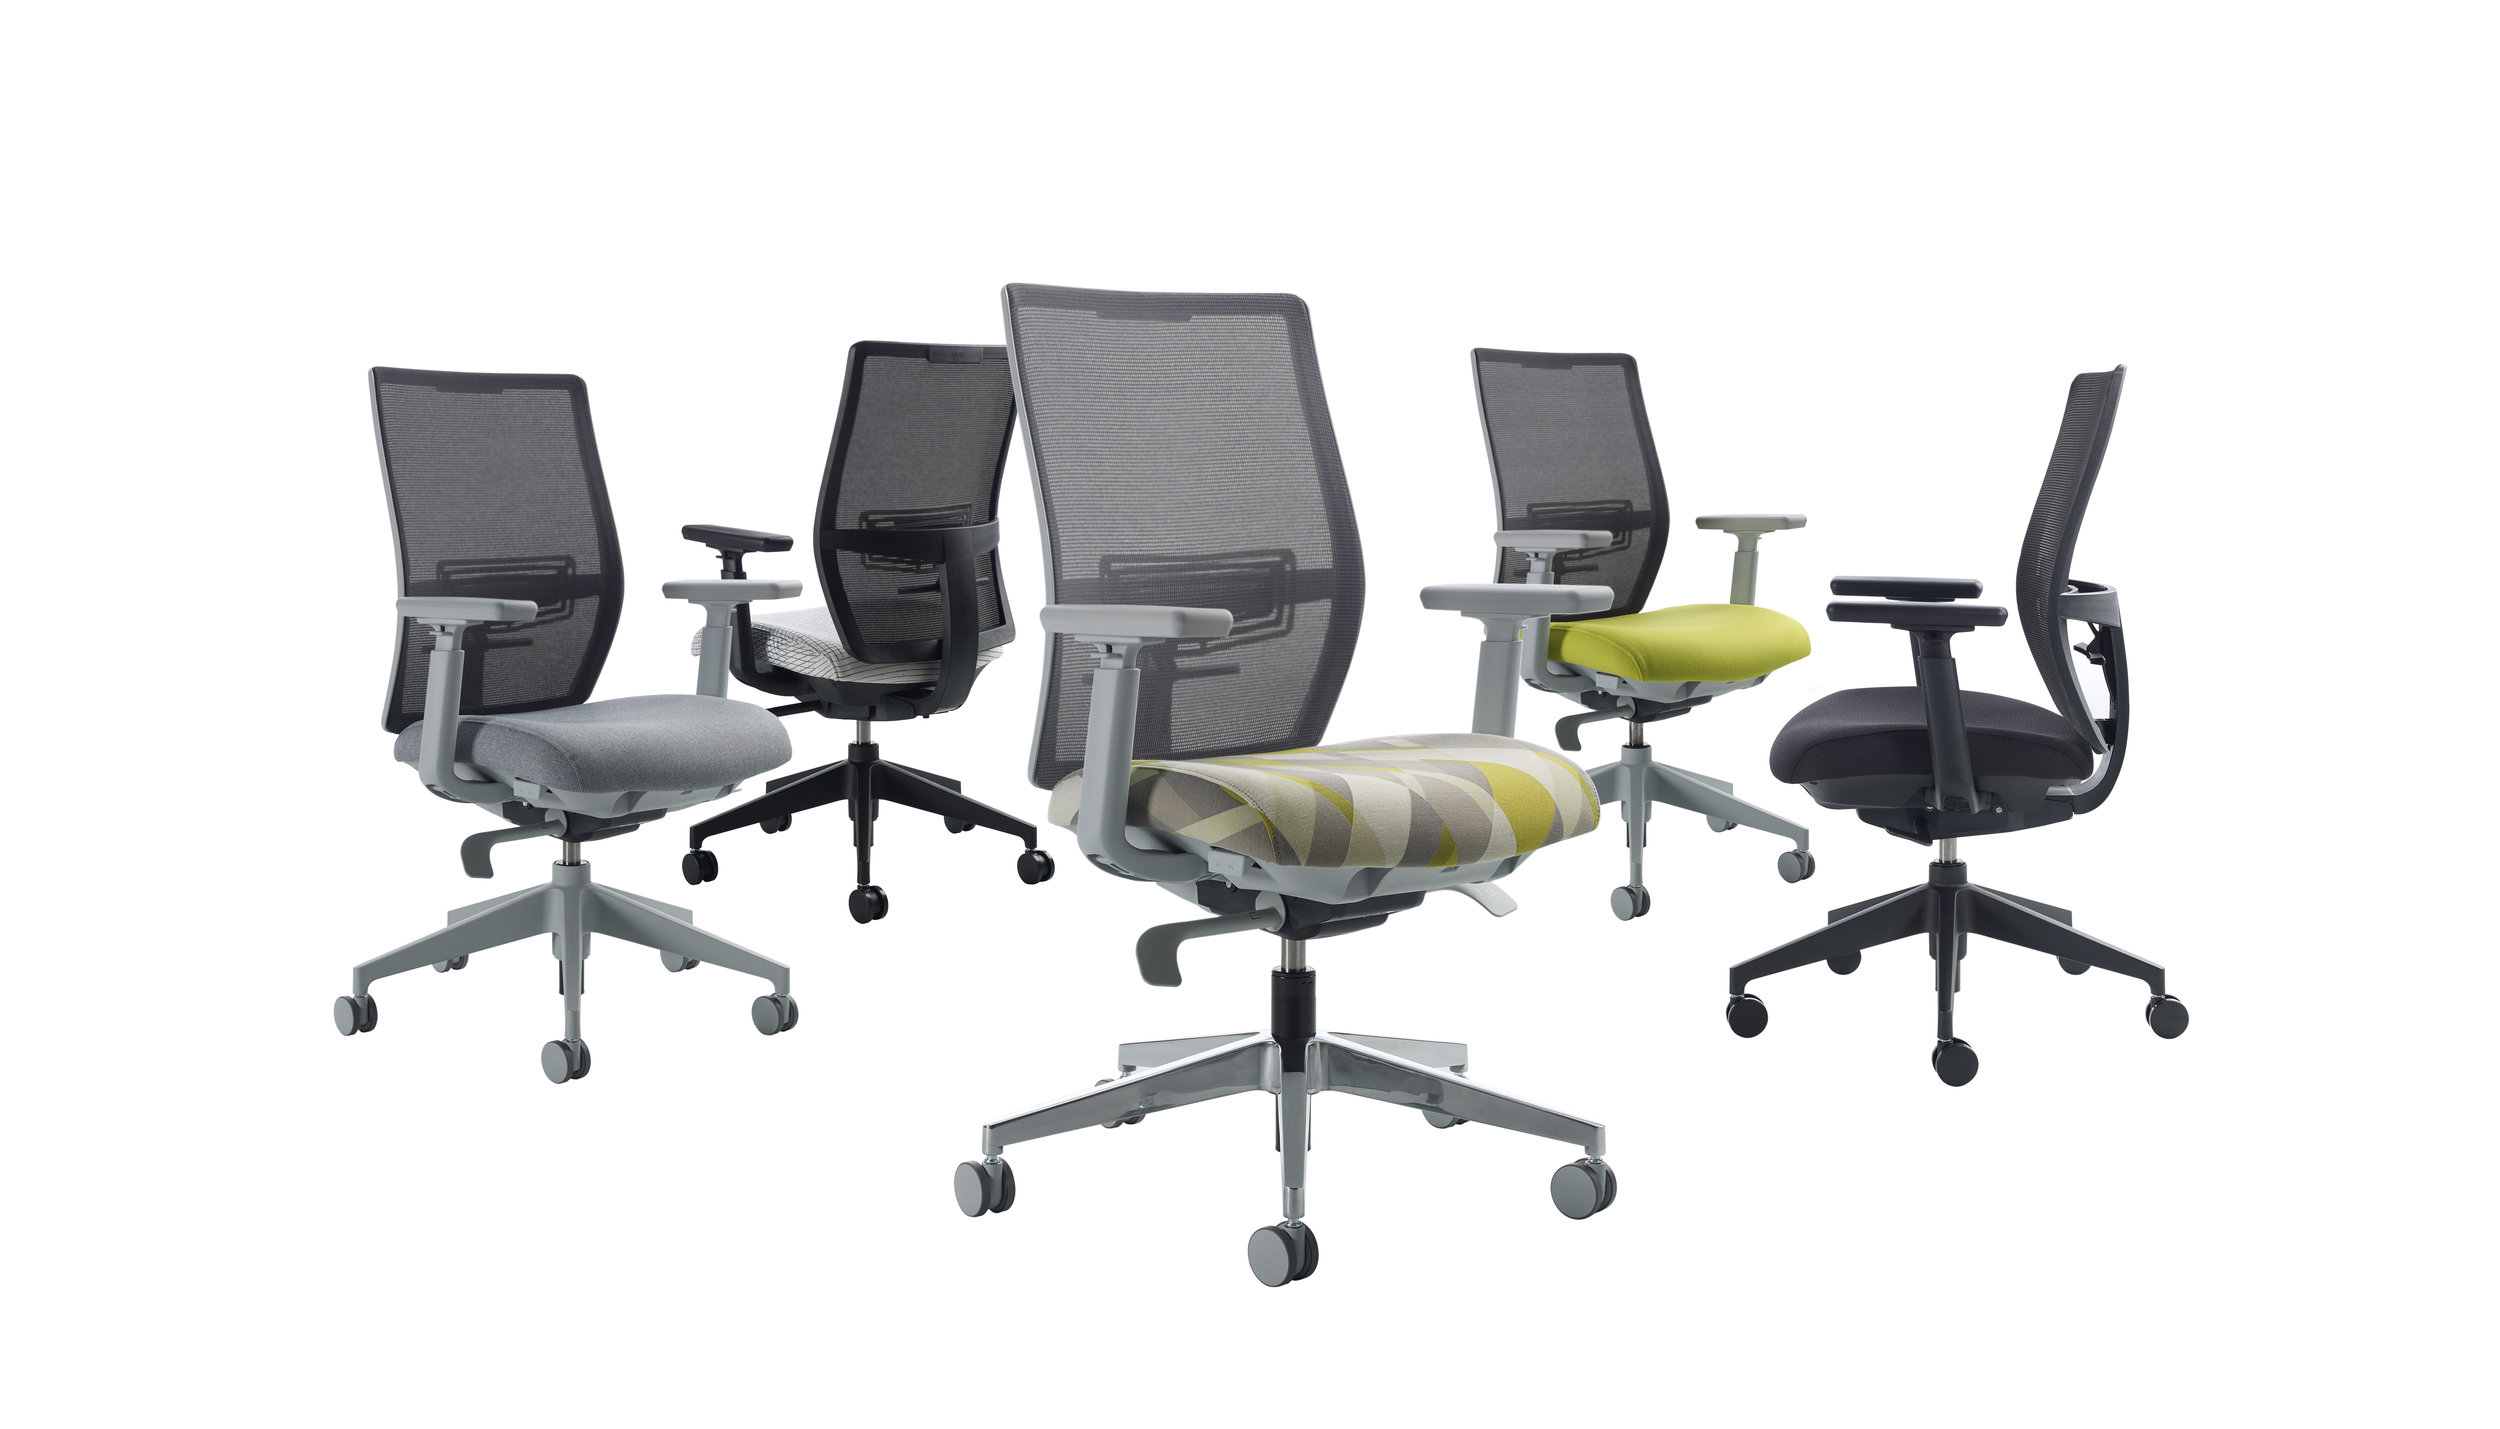 (4) Devens task seating - Do you want task seating in this area? Slideshow mentions 4 chairs, 2 task chairs